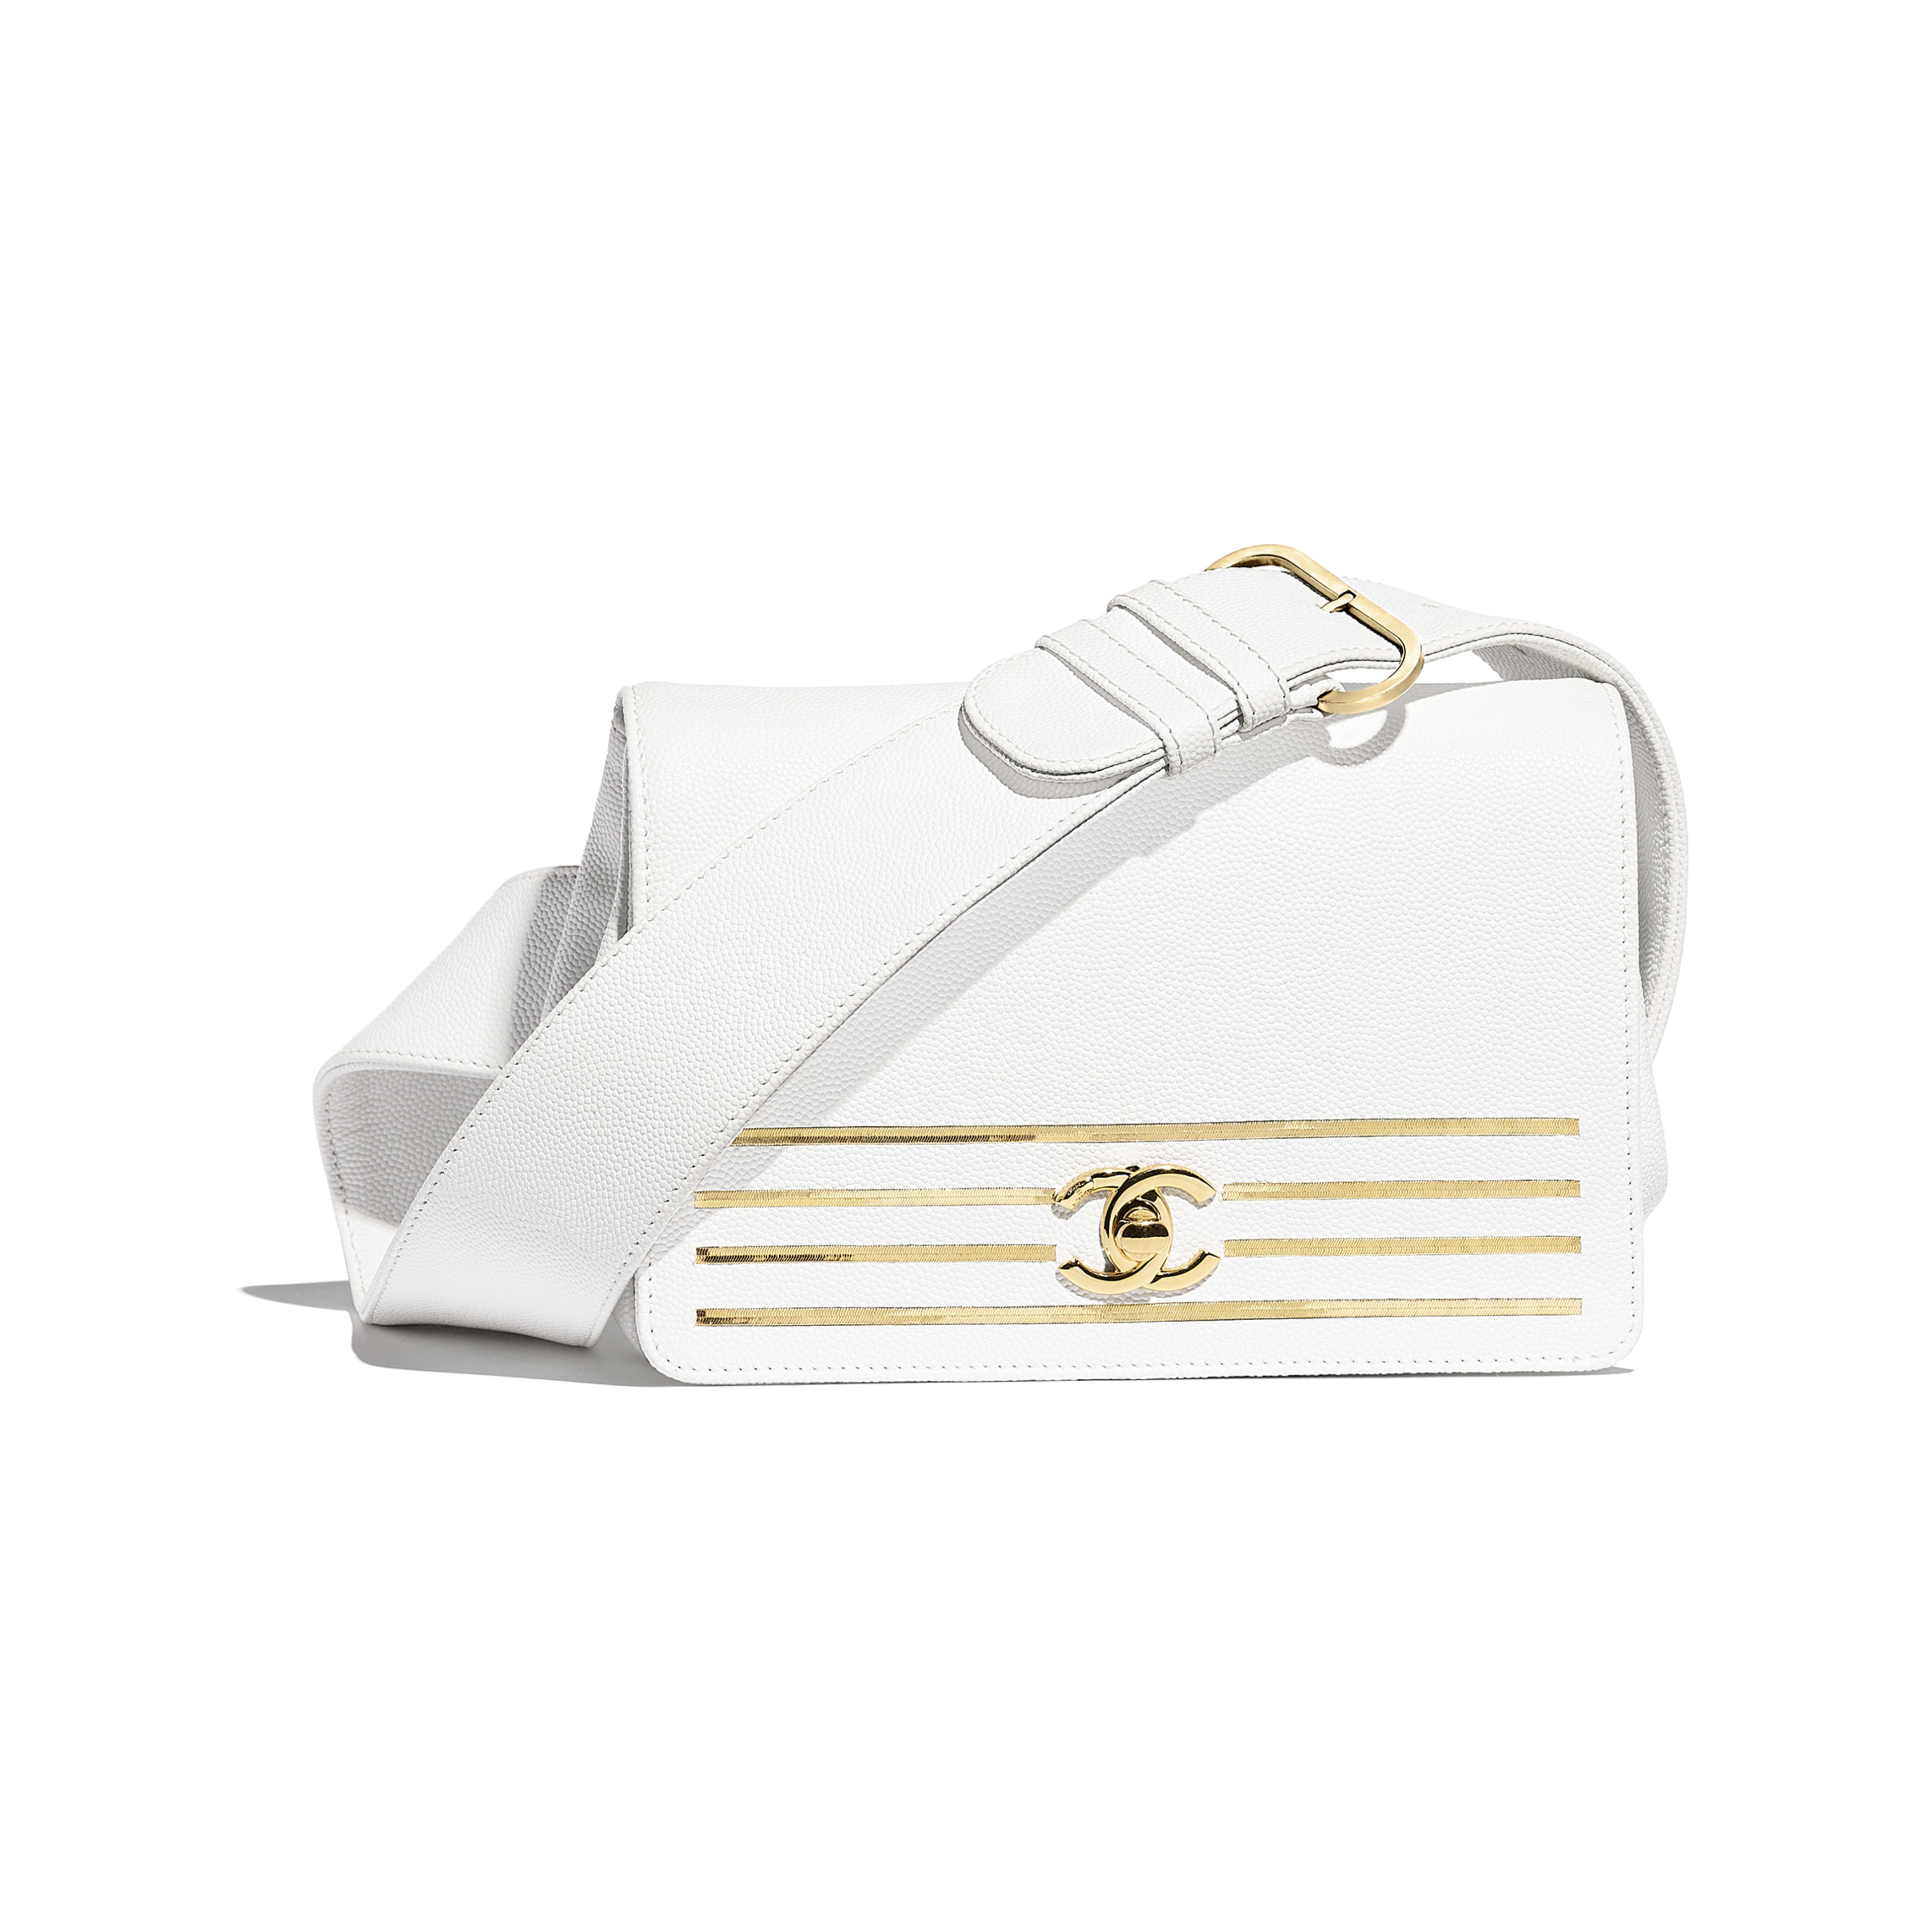 Waist Bag - White - Embroidered Grained Calfskin & Gold-Tone Metal - Default view - see full sized version